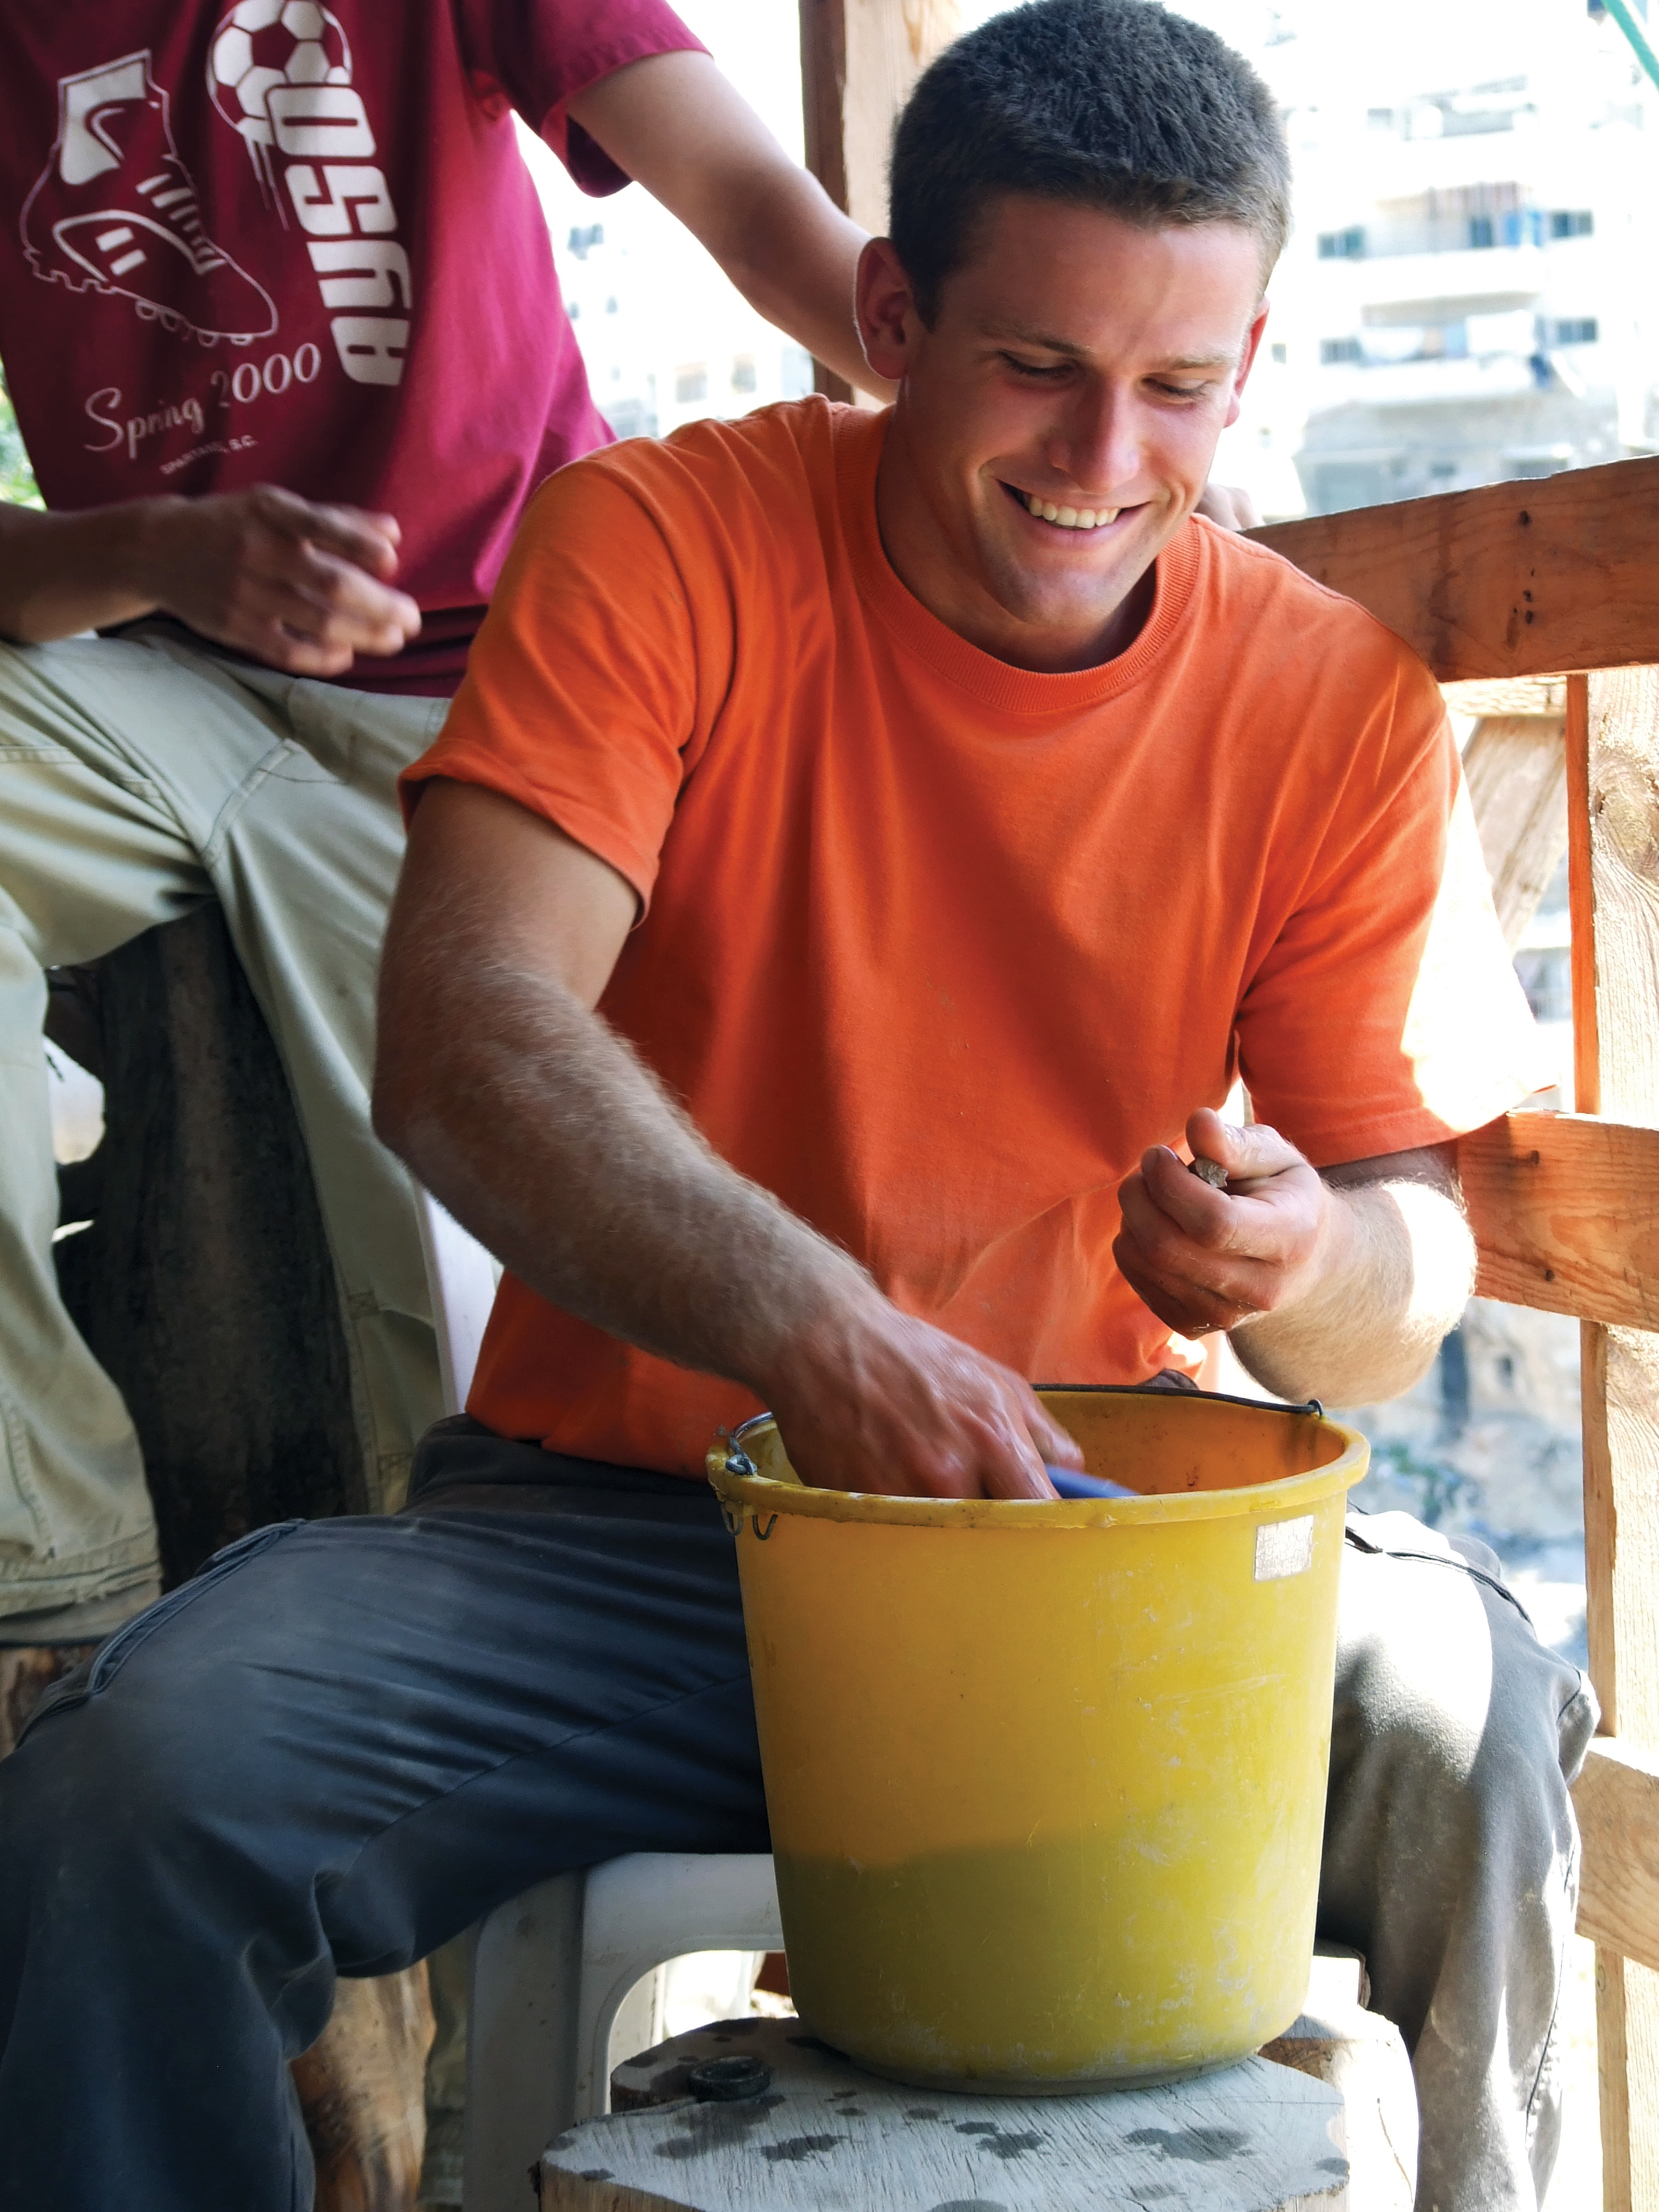 Armstrong College Student, John Rambo, Cleans Pottery at Excavation Site